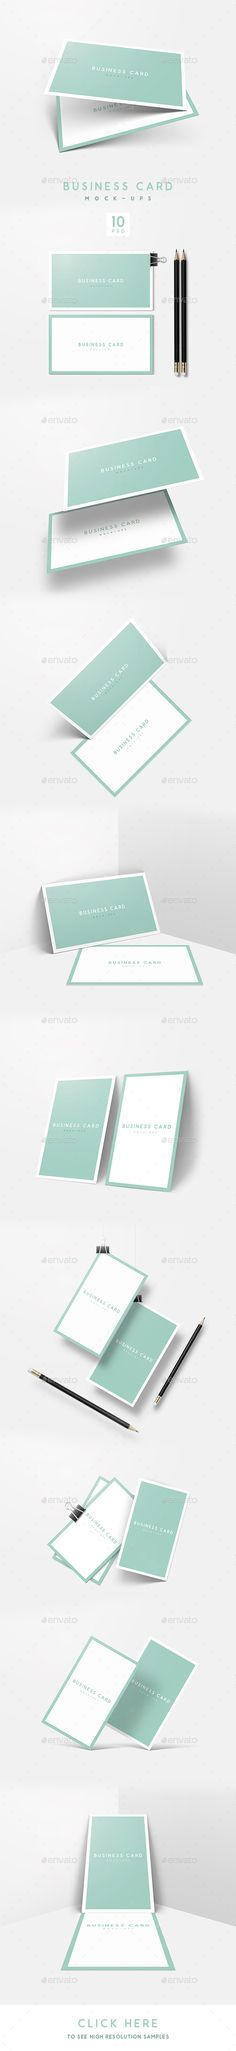 Realistic business card mockups vol 2 the smart the ojays and a business card mockup reheart Gallery